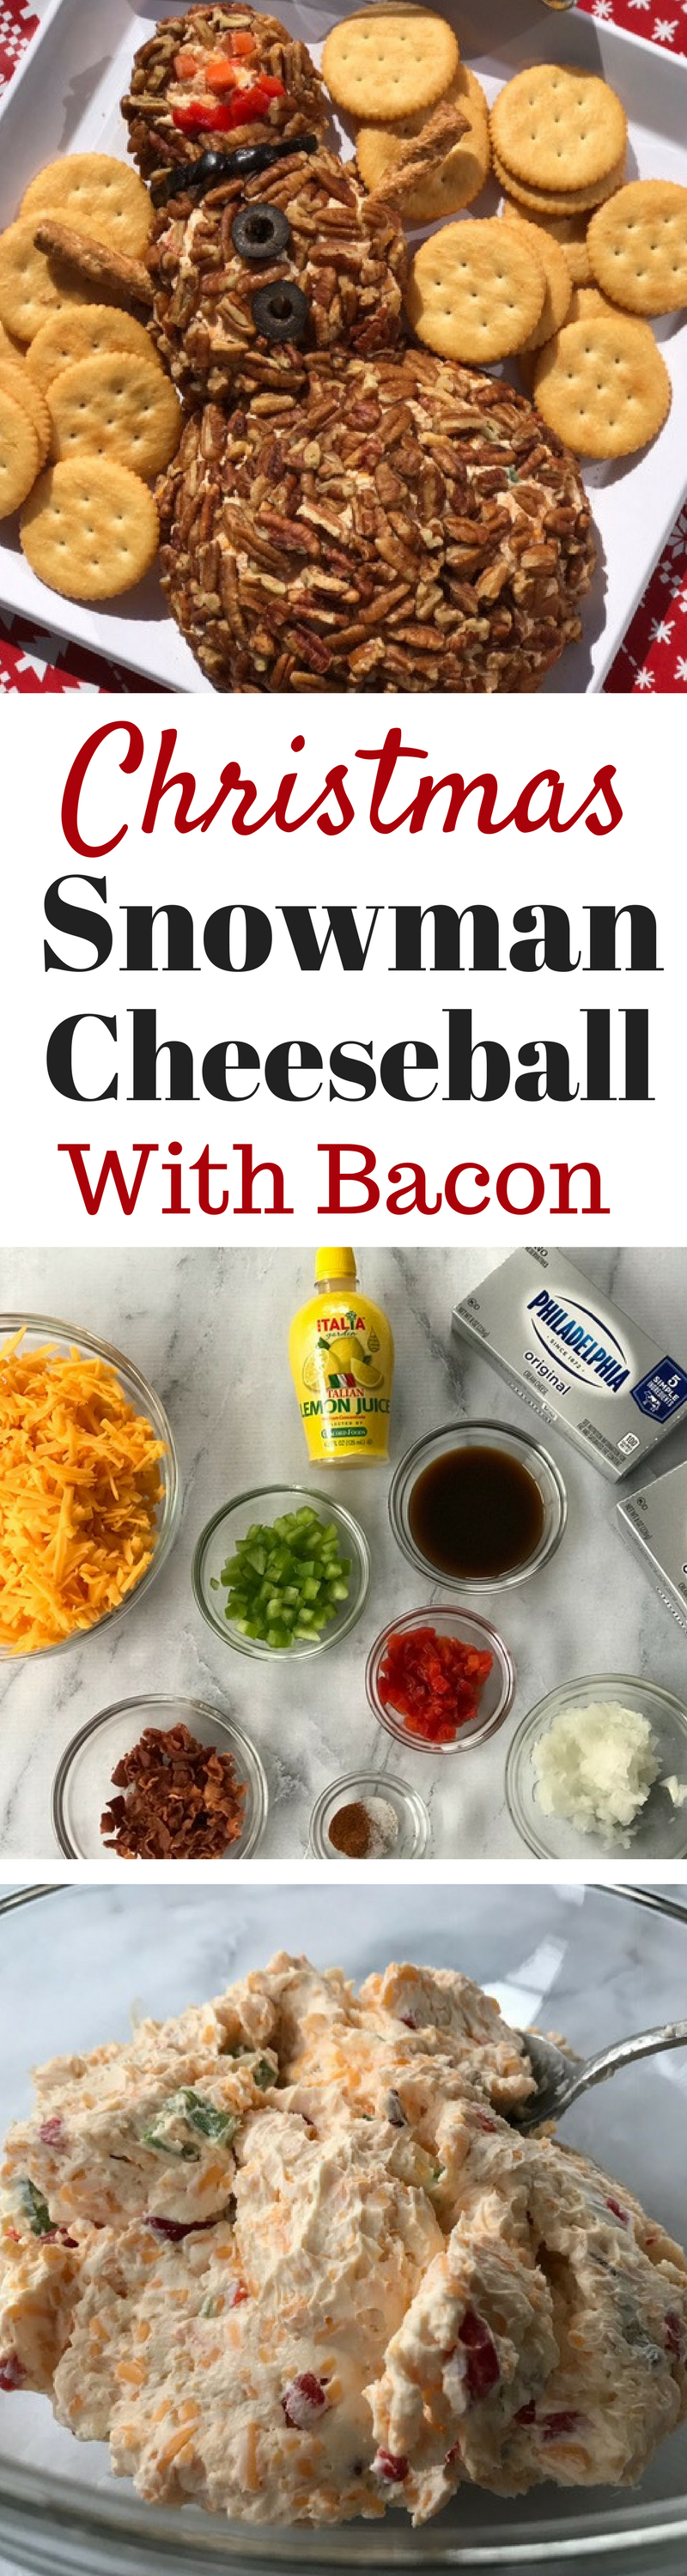 Christmas Cheese Ball.Christmas Snowman Bacon Cheeseball